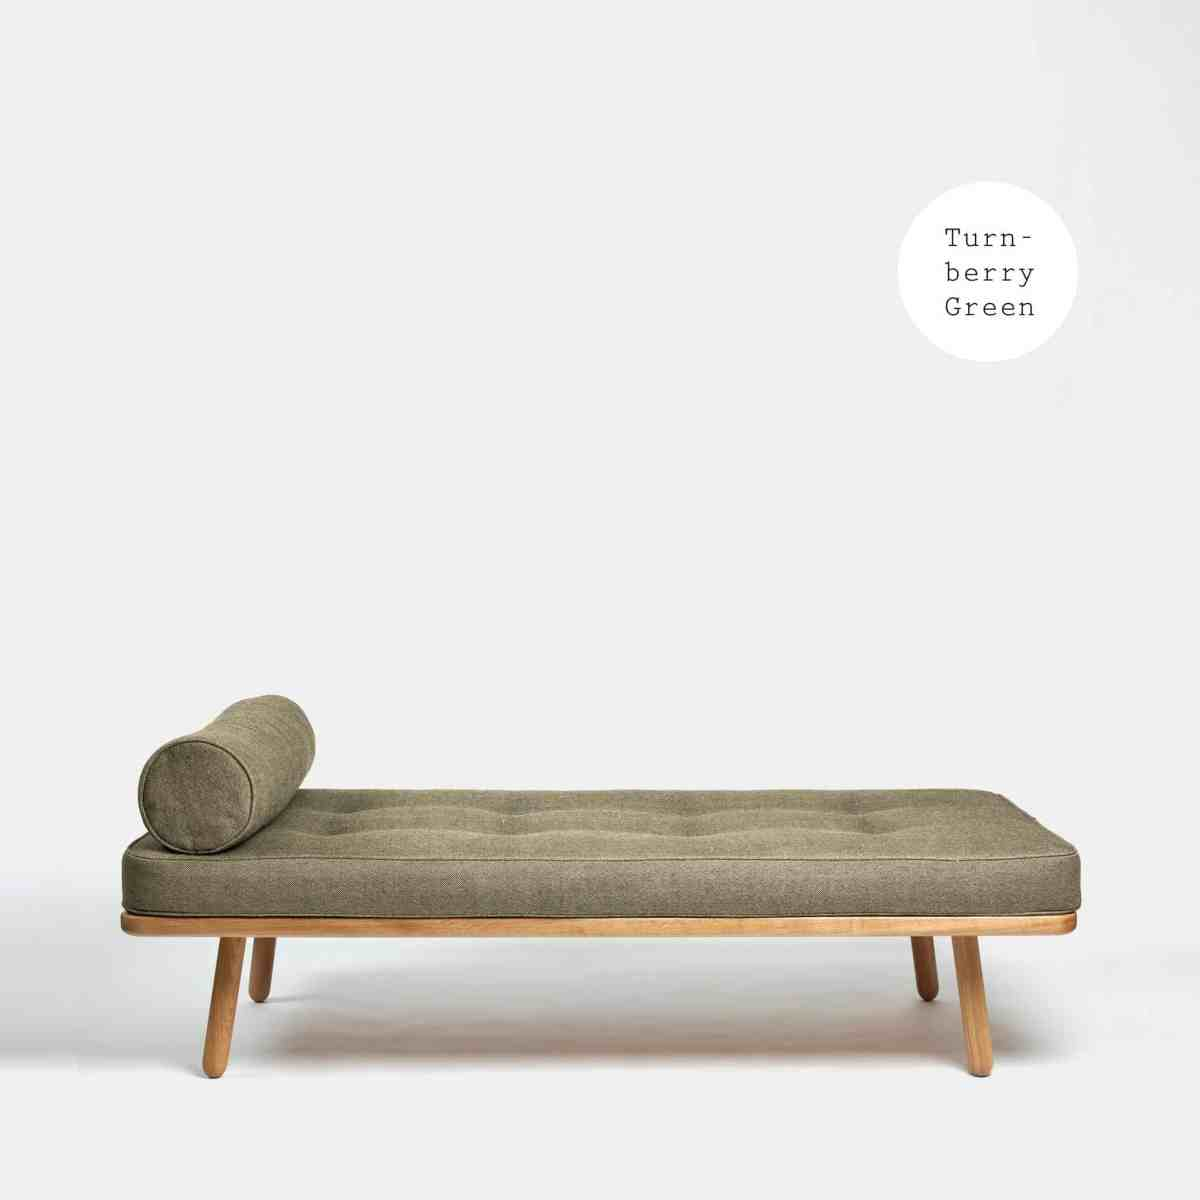 another-country-day-bed-one-oak-natural–mattress-1-bolster-turnberry-green-001